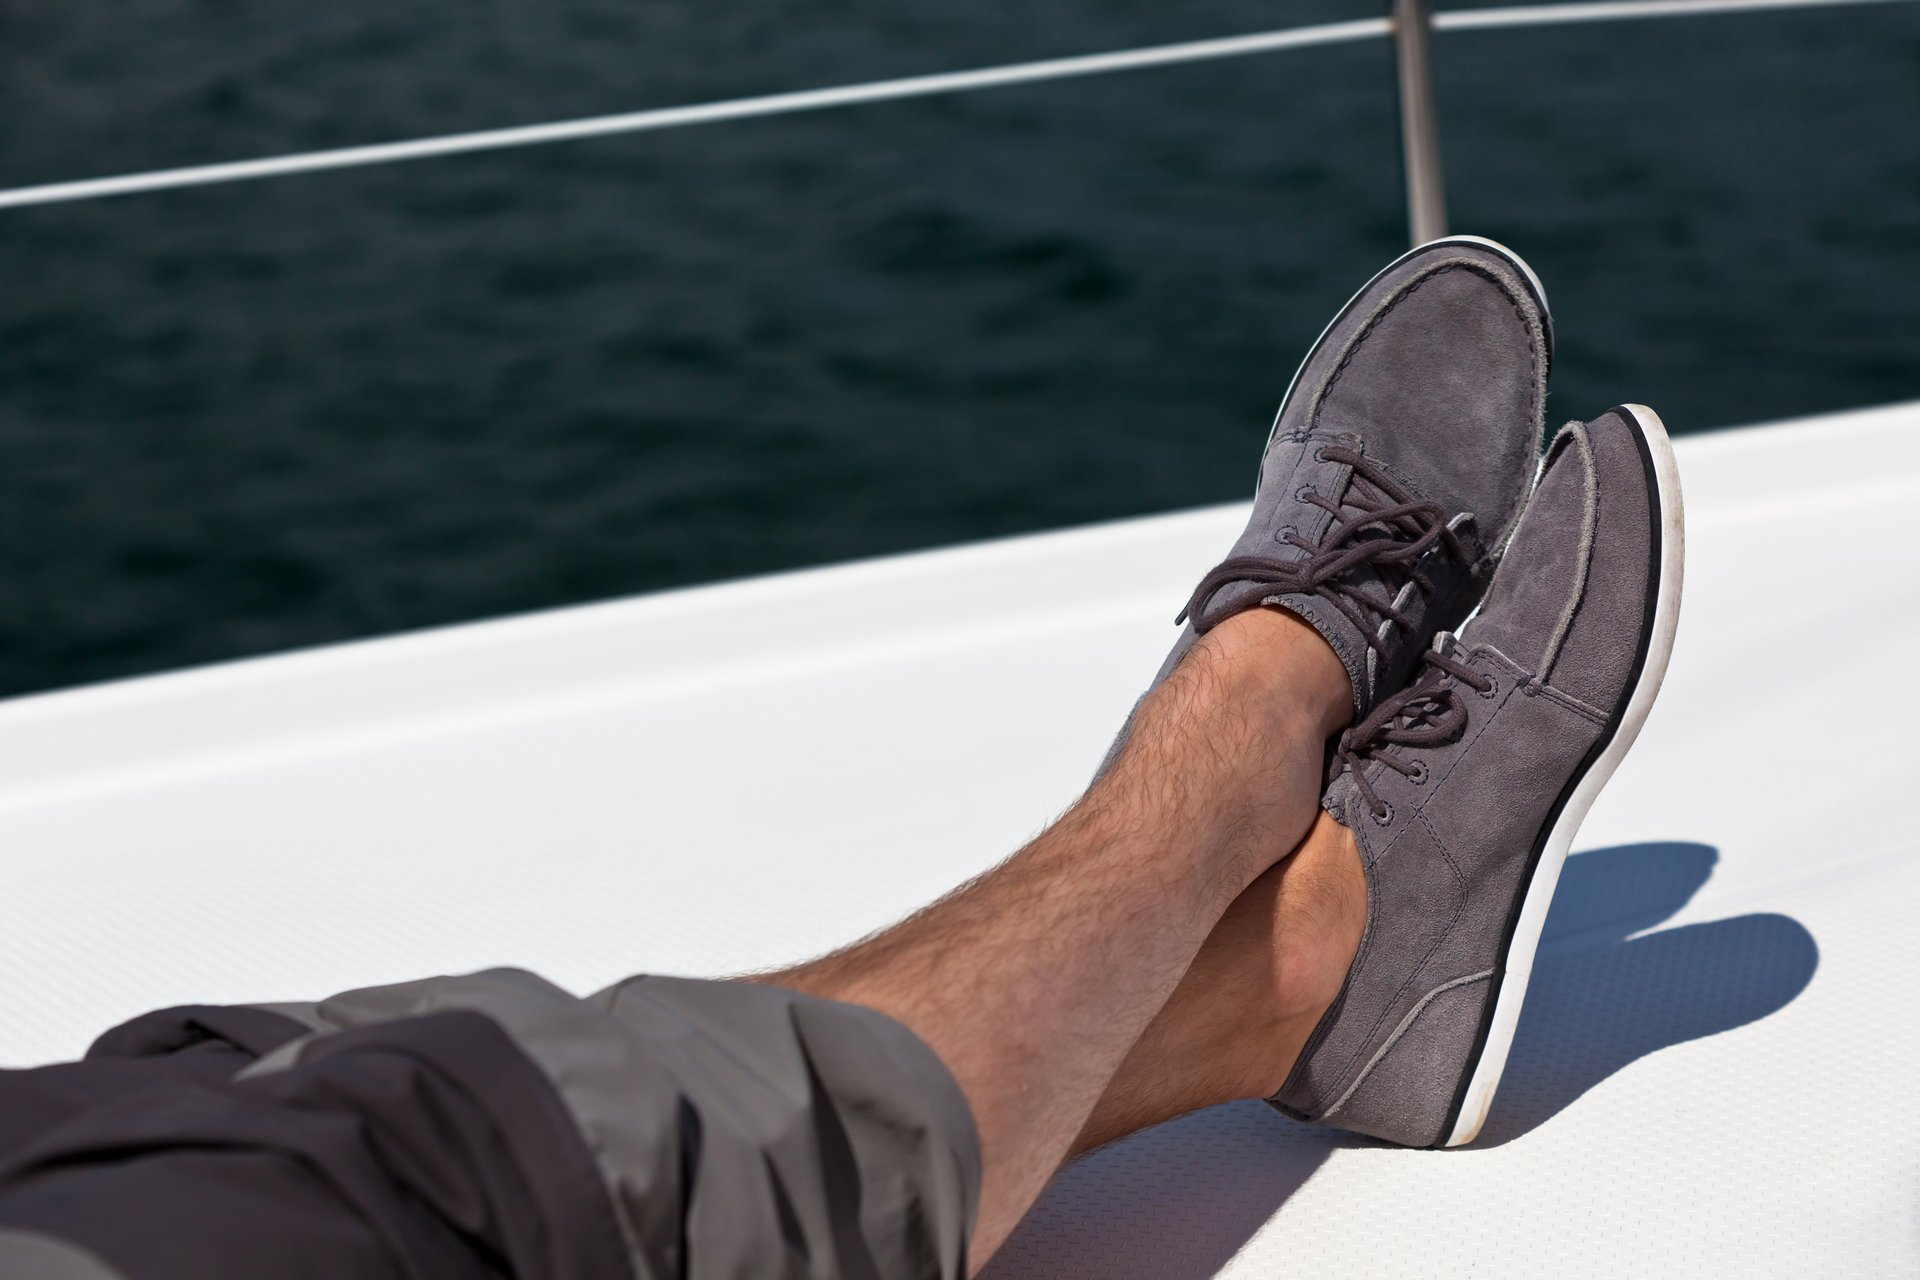 You don't need a boat to enjoy relaxing in deck shoes, but it doesn't hurt.